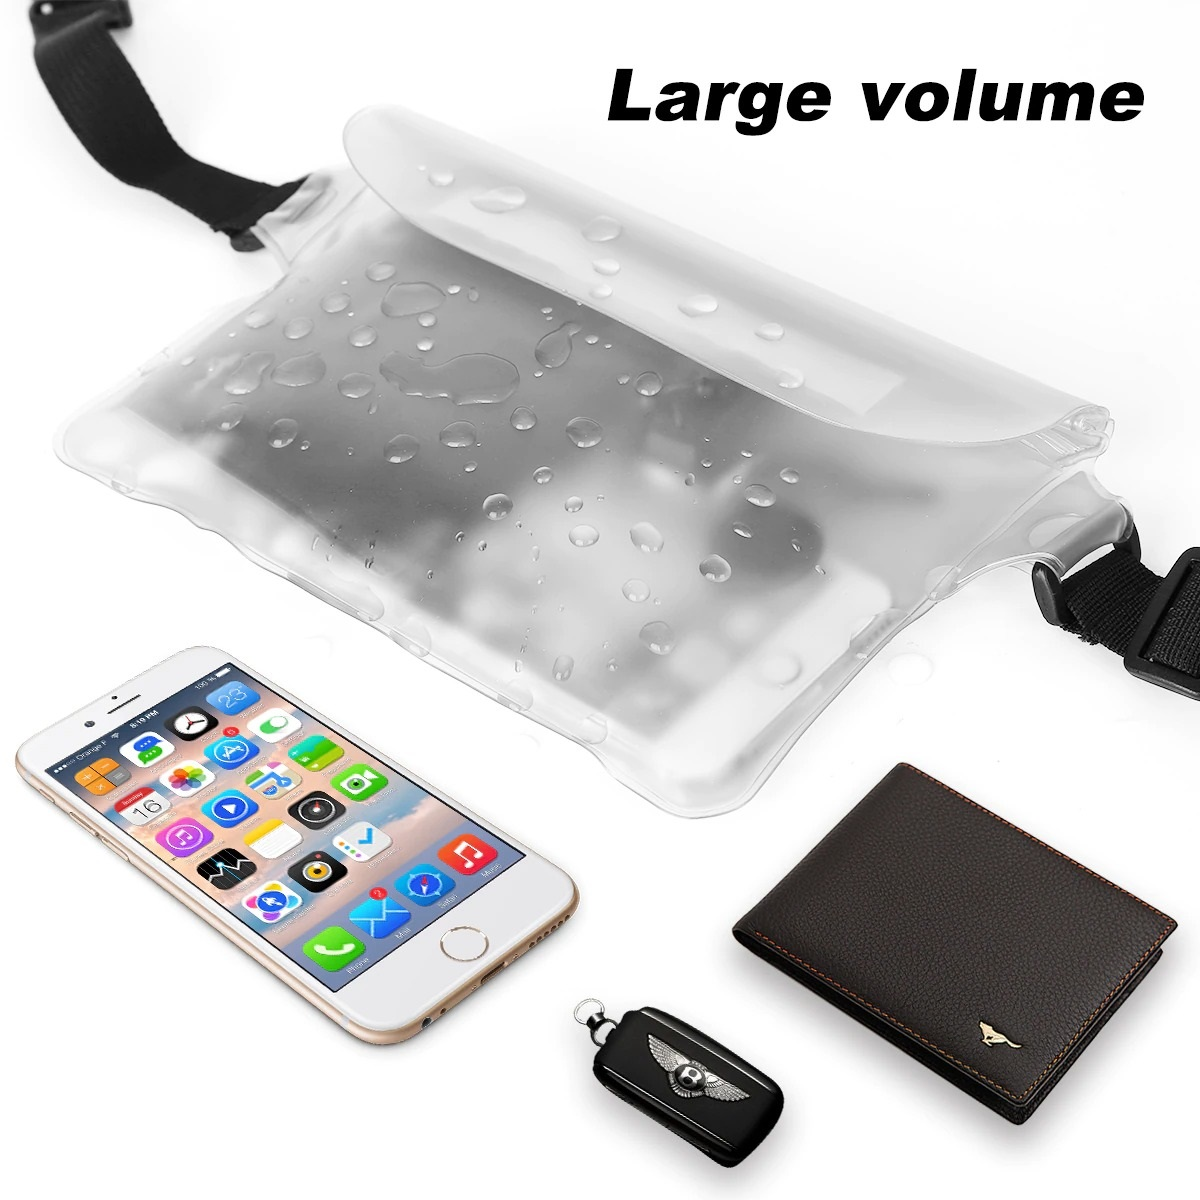 2-Pack Waterproof Pouch With Waist Strap (7)